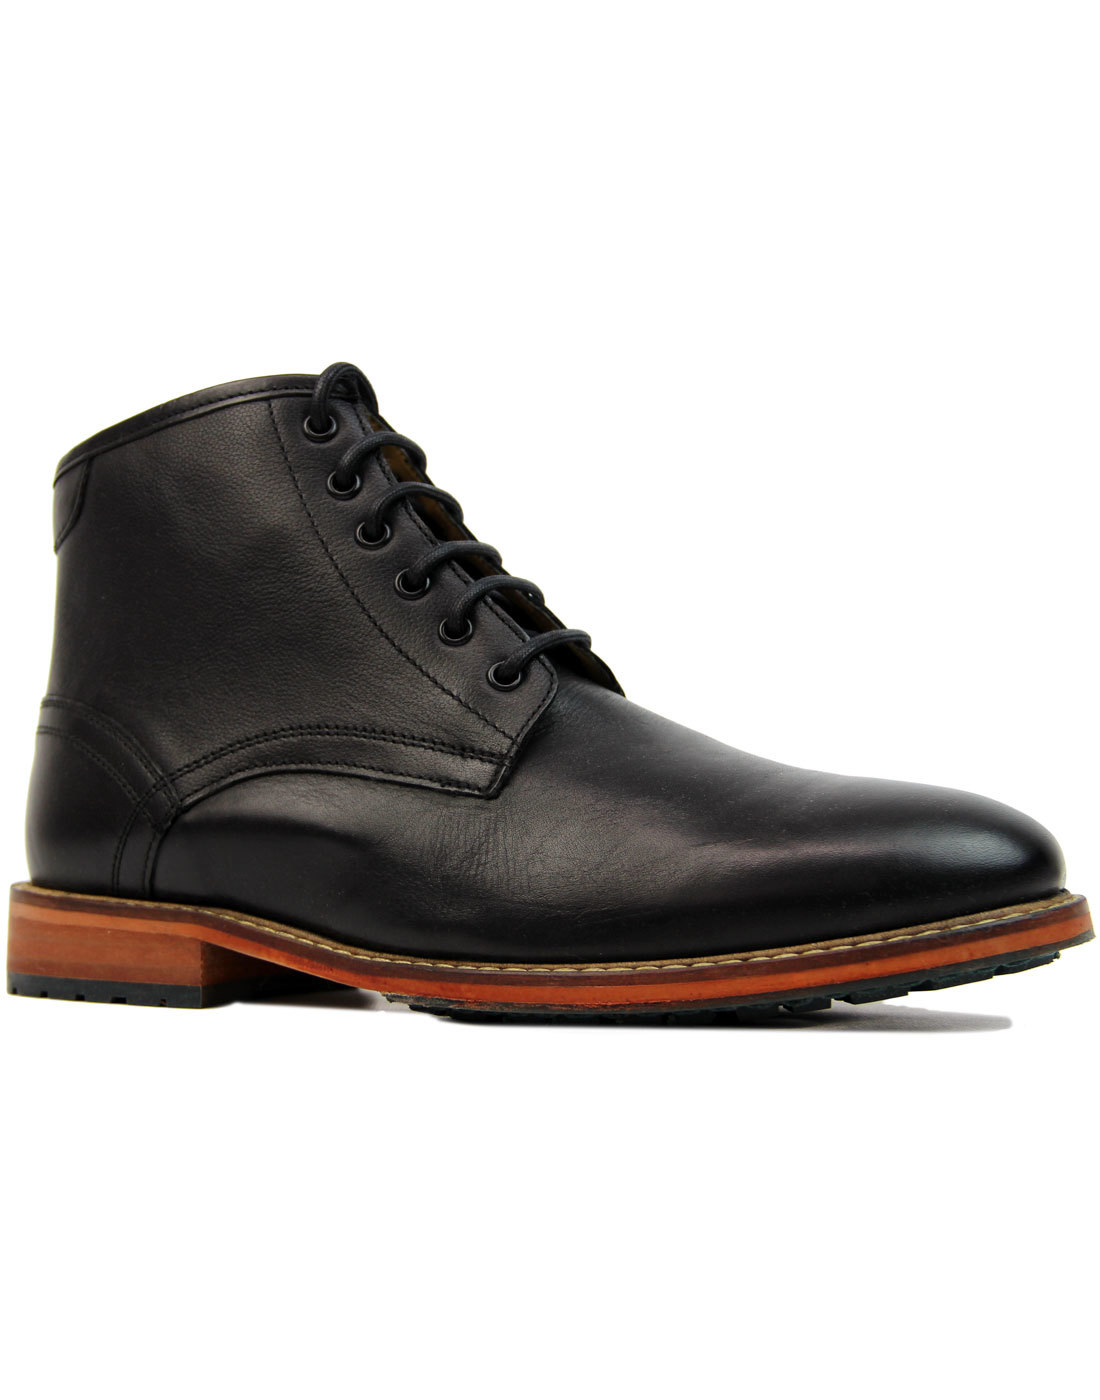 Endrick LYLE & SCOTT Retro Mod Worker Boots BLACK